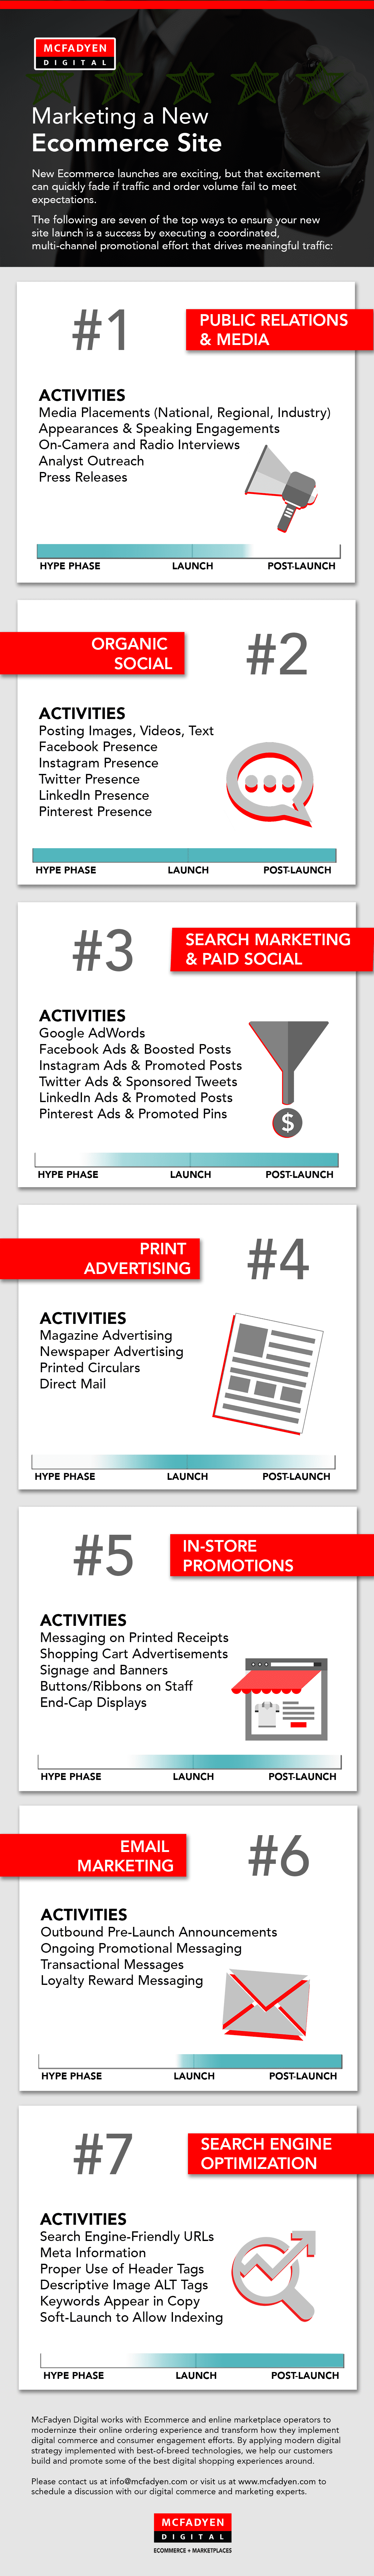 Infographic - Marketing a New Ecommerce Site